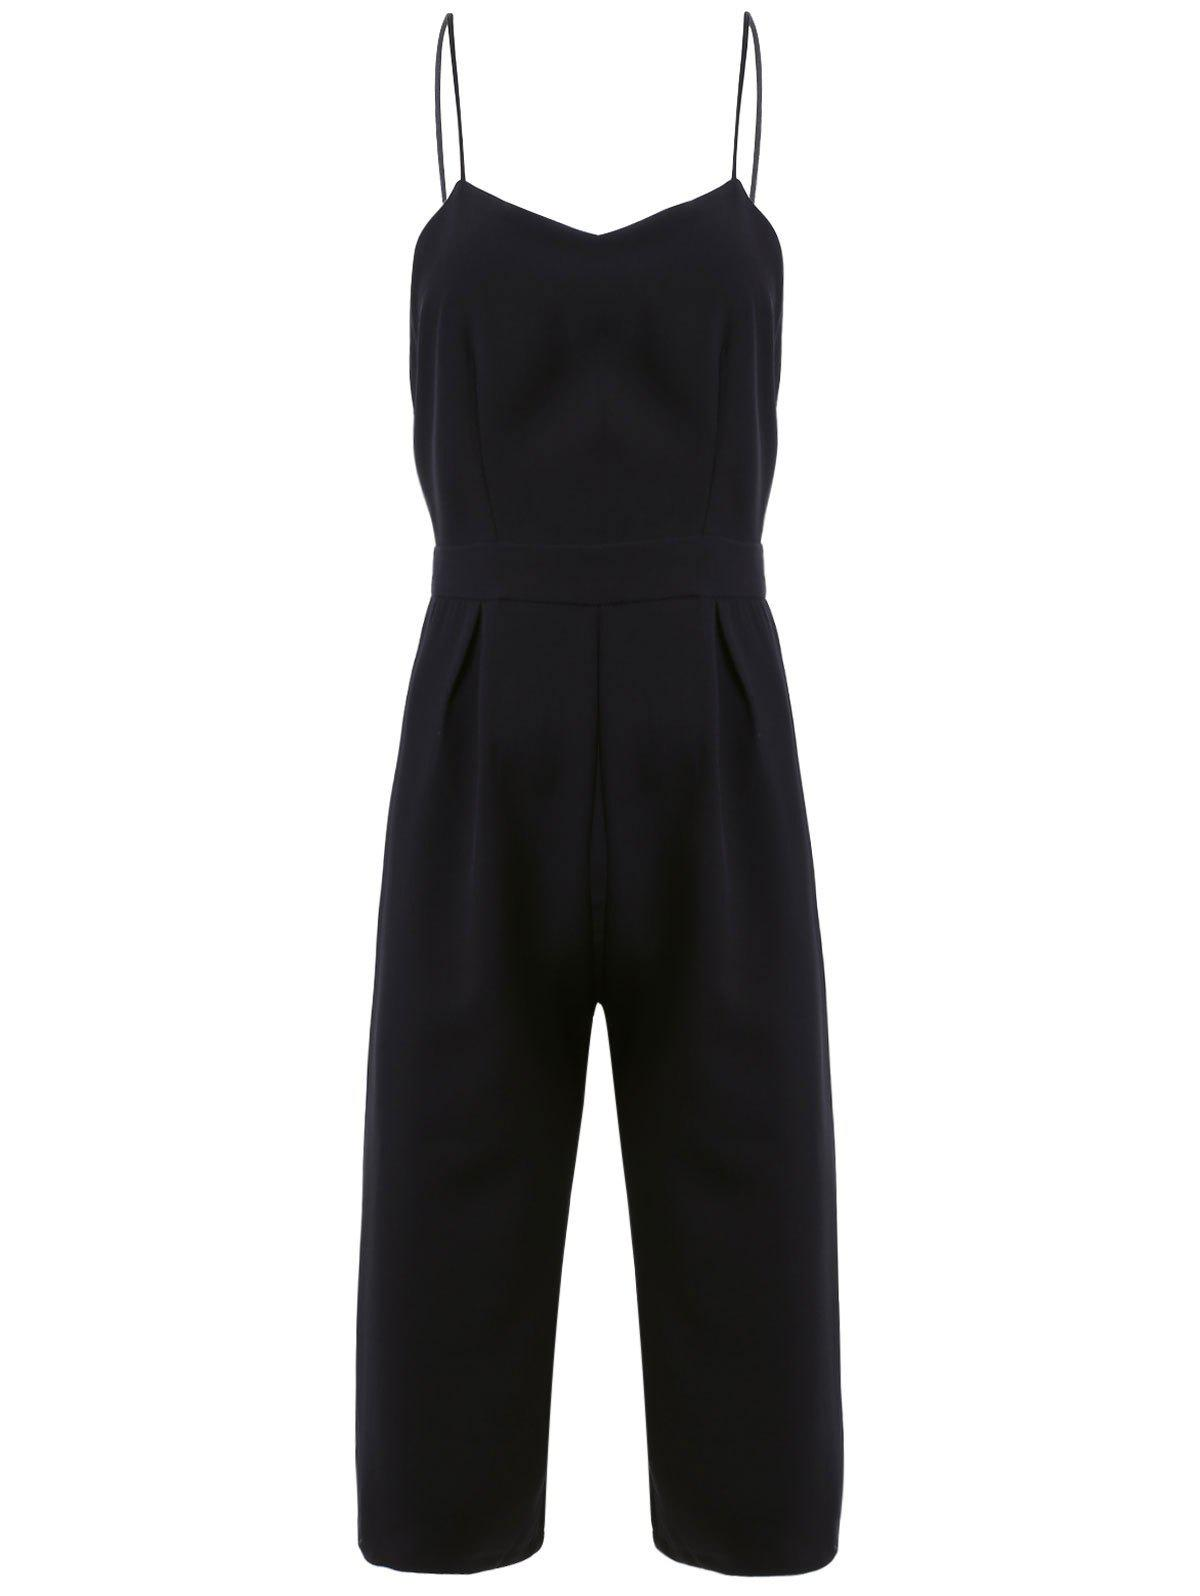 Simple Women's Spaghetti Strap Backless Jumpsuit